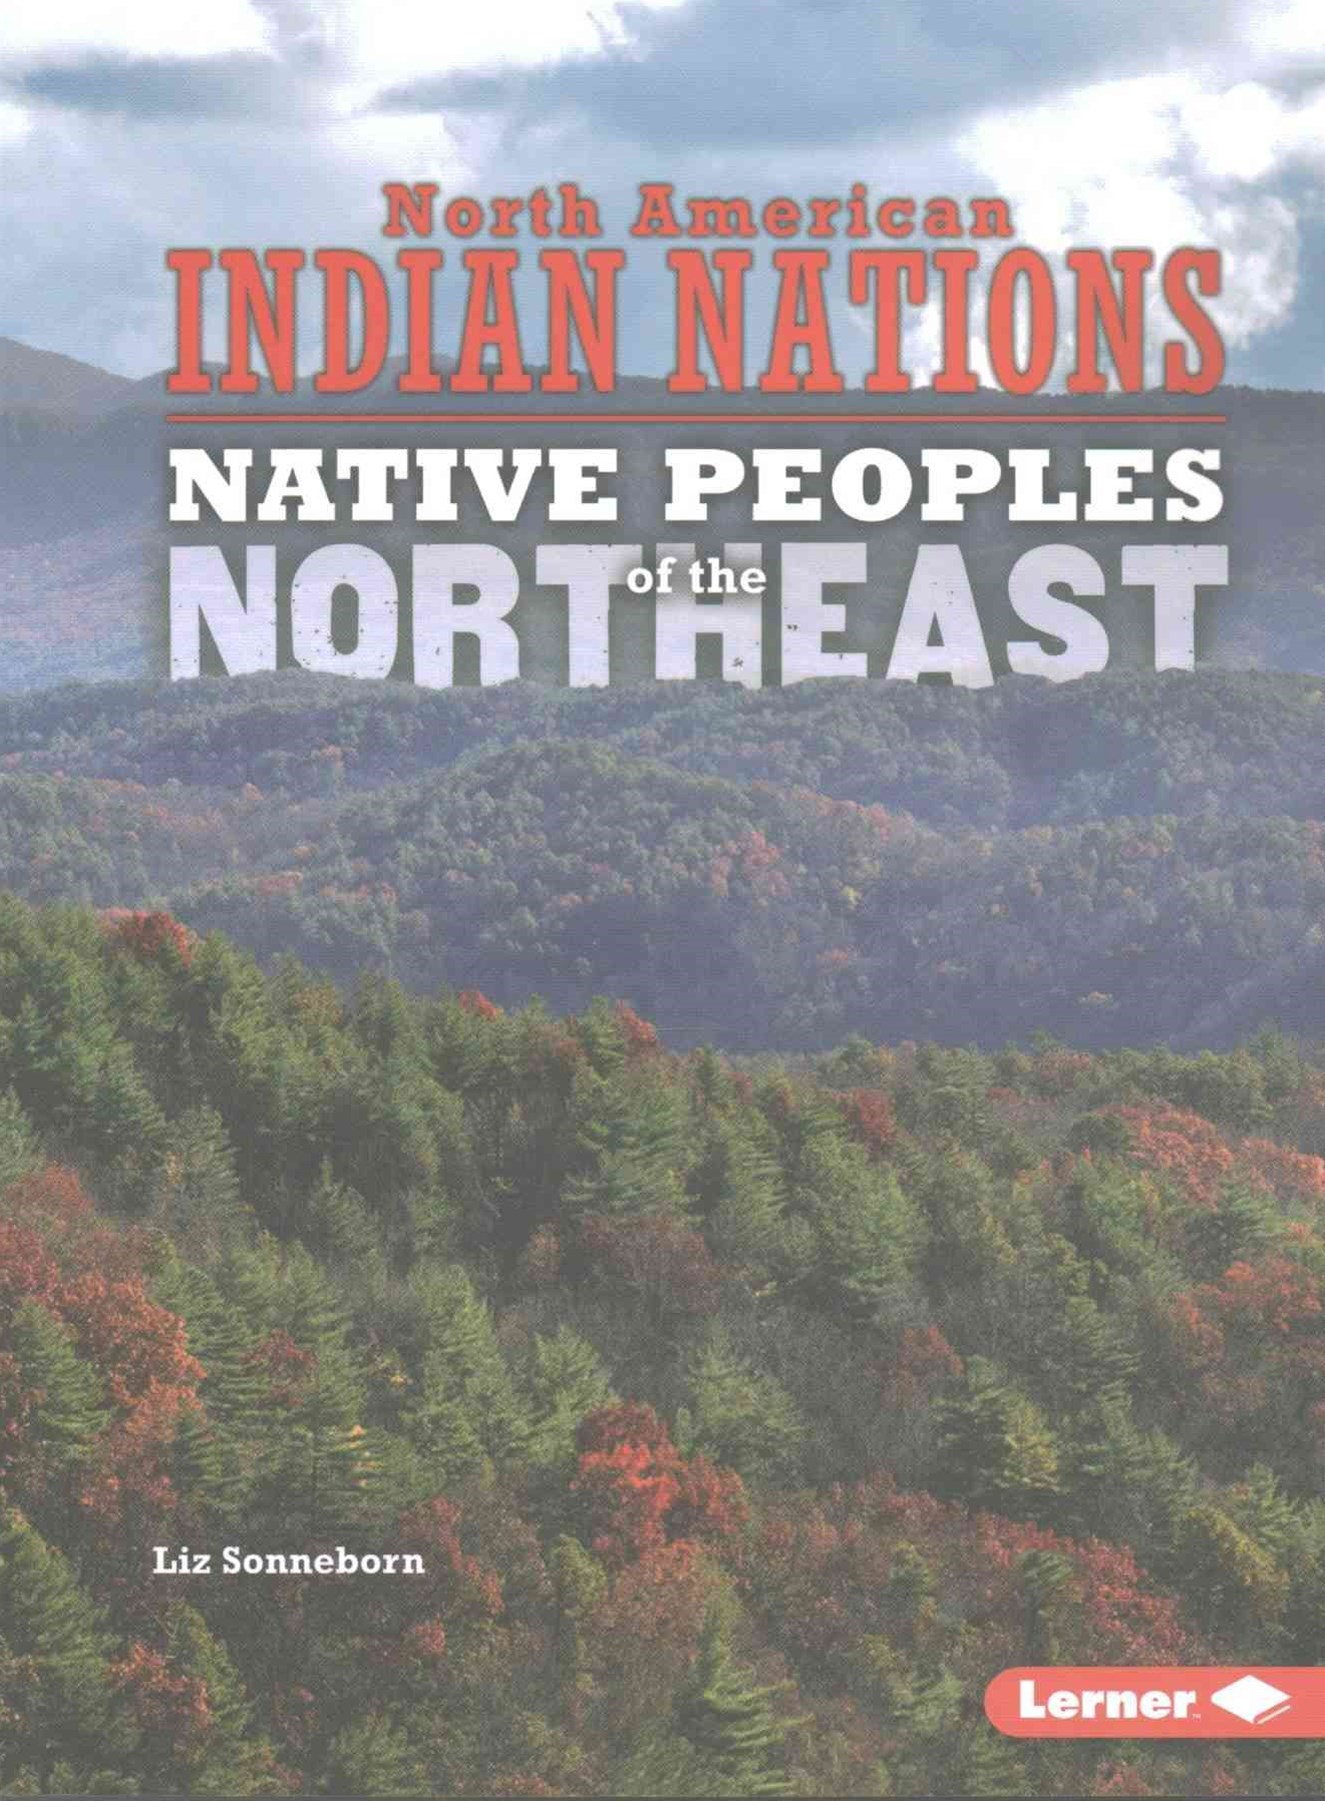 Northeast - Native Peoples - North American Indian Nations